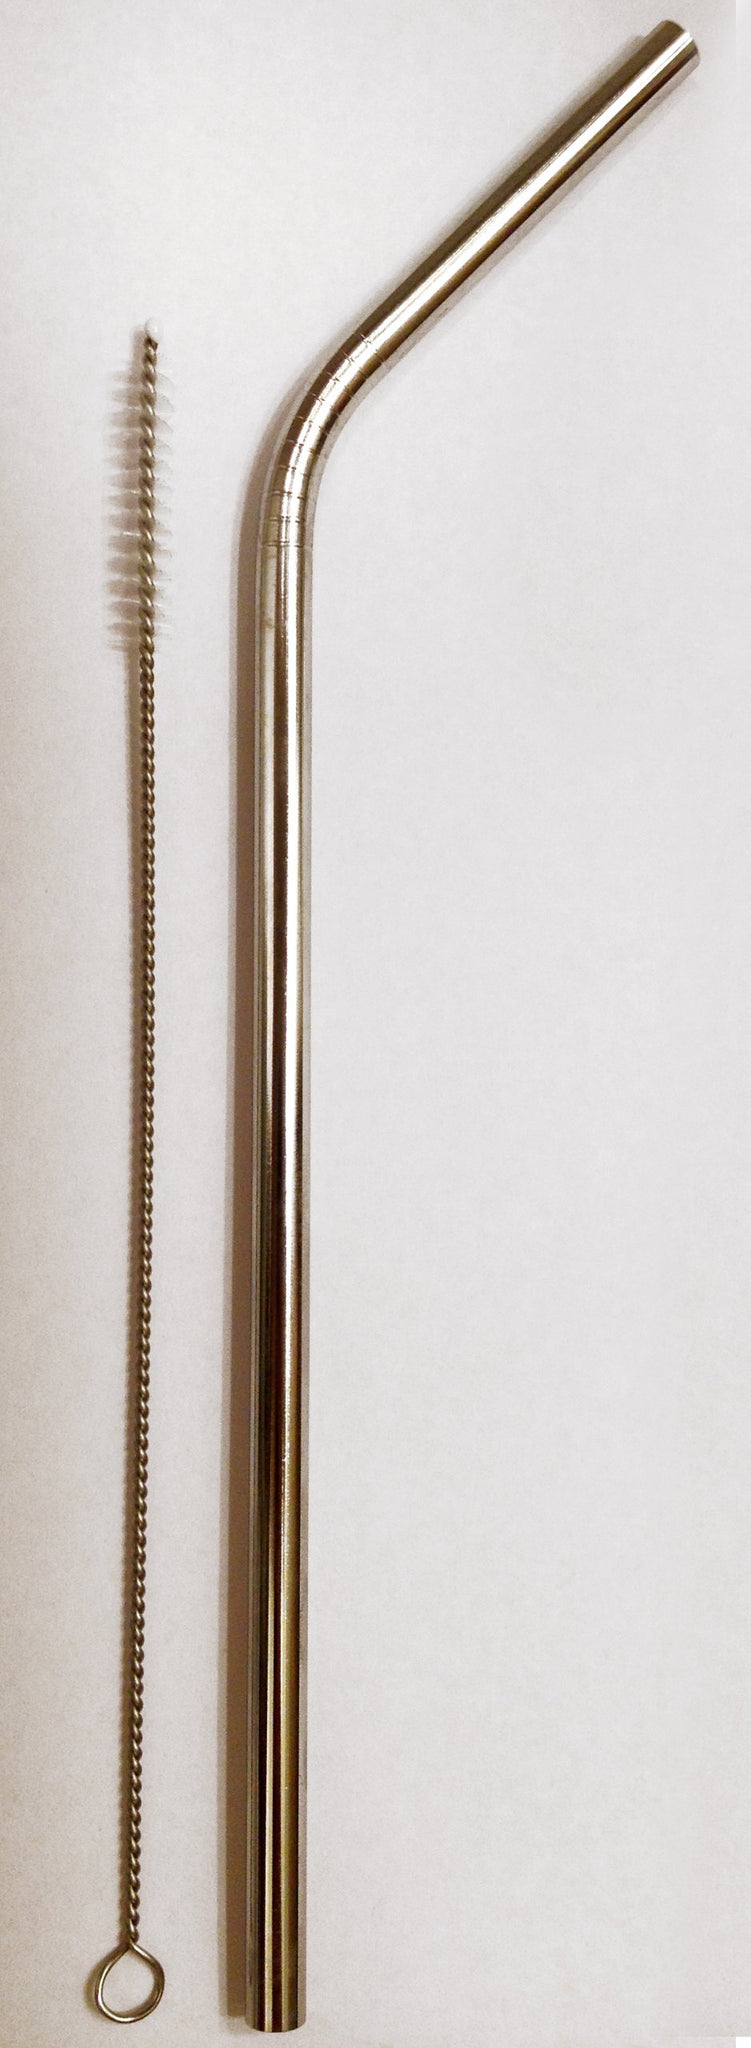 Reusable Straw - Stainless Steel Drinking - 1 metal straw + Cleaner - Eco Friendly, SAFE, NON-TOXIC non-plastic